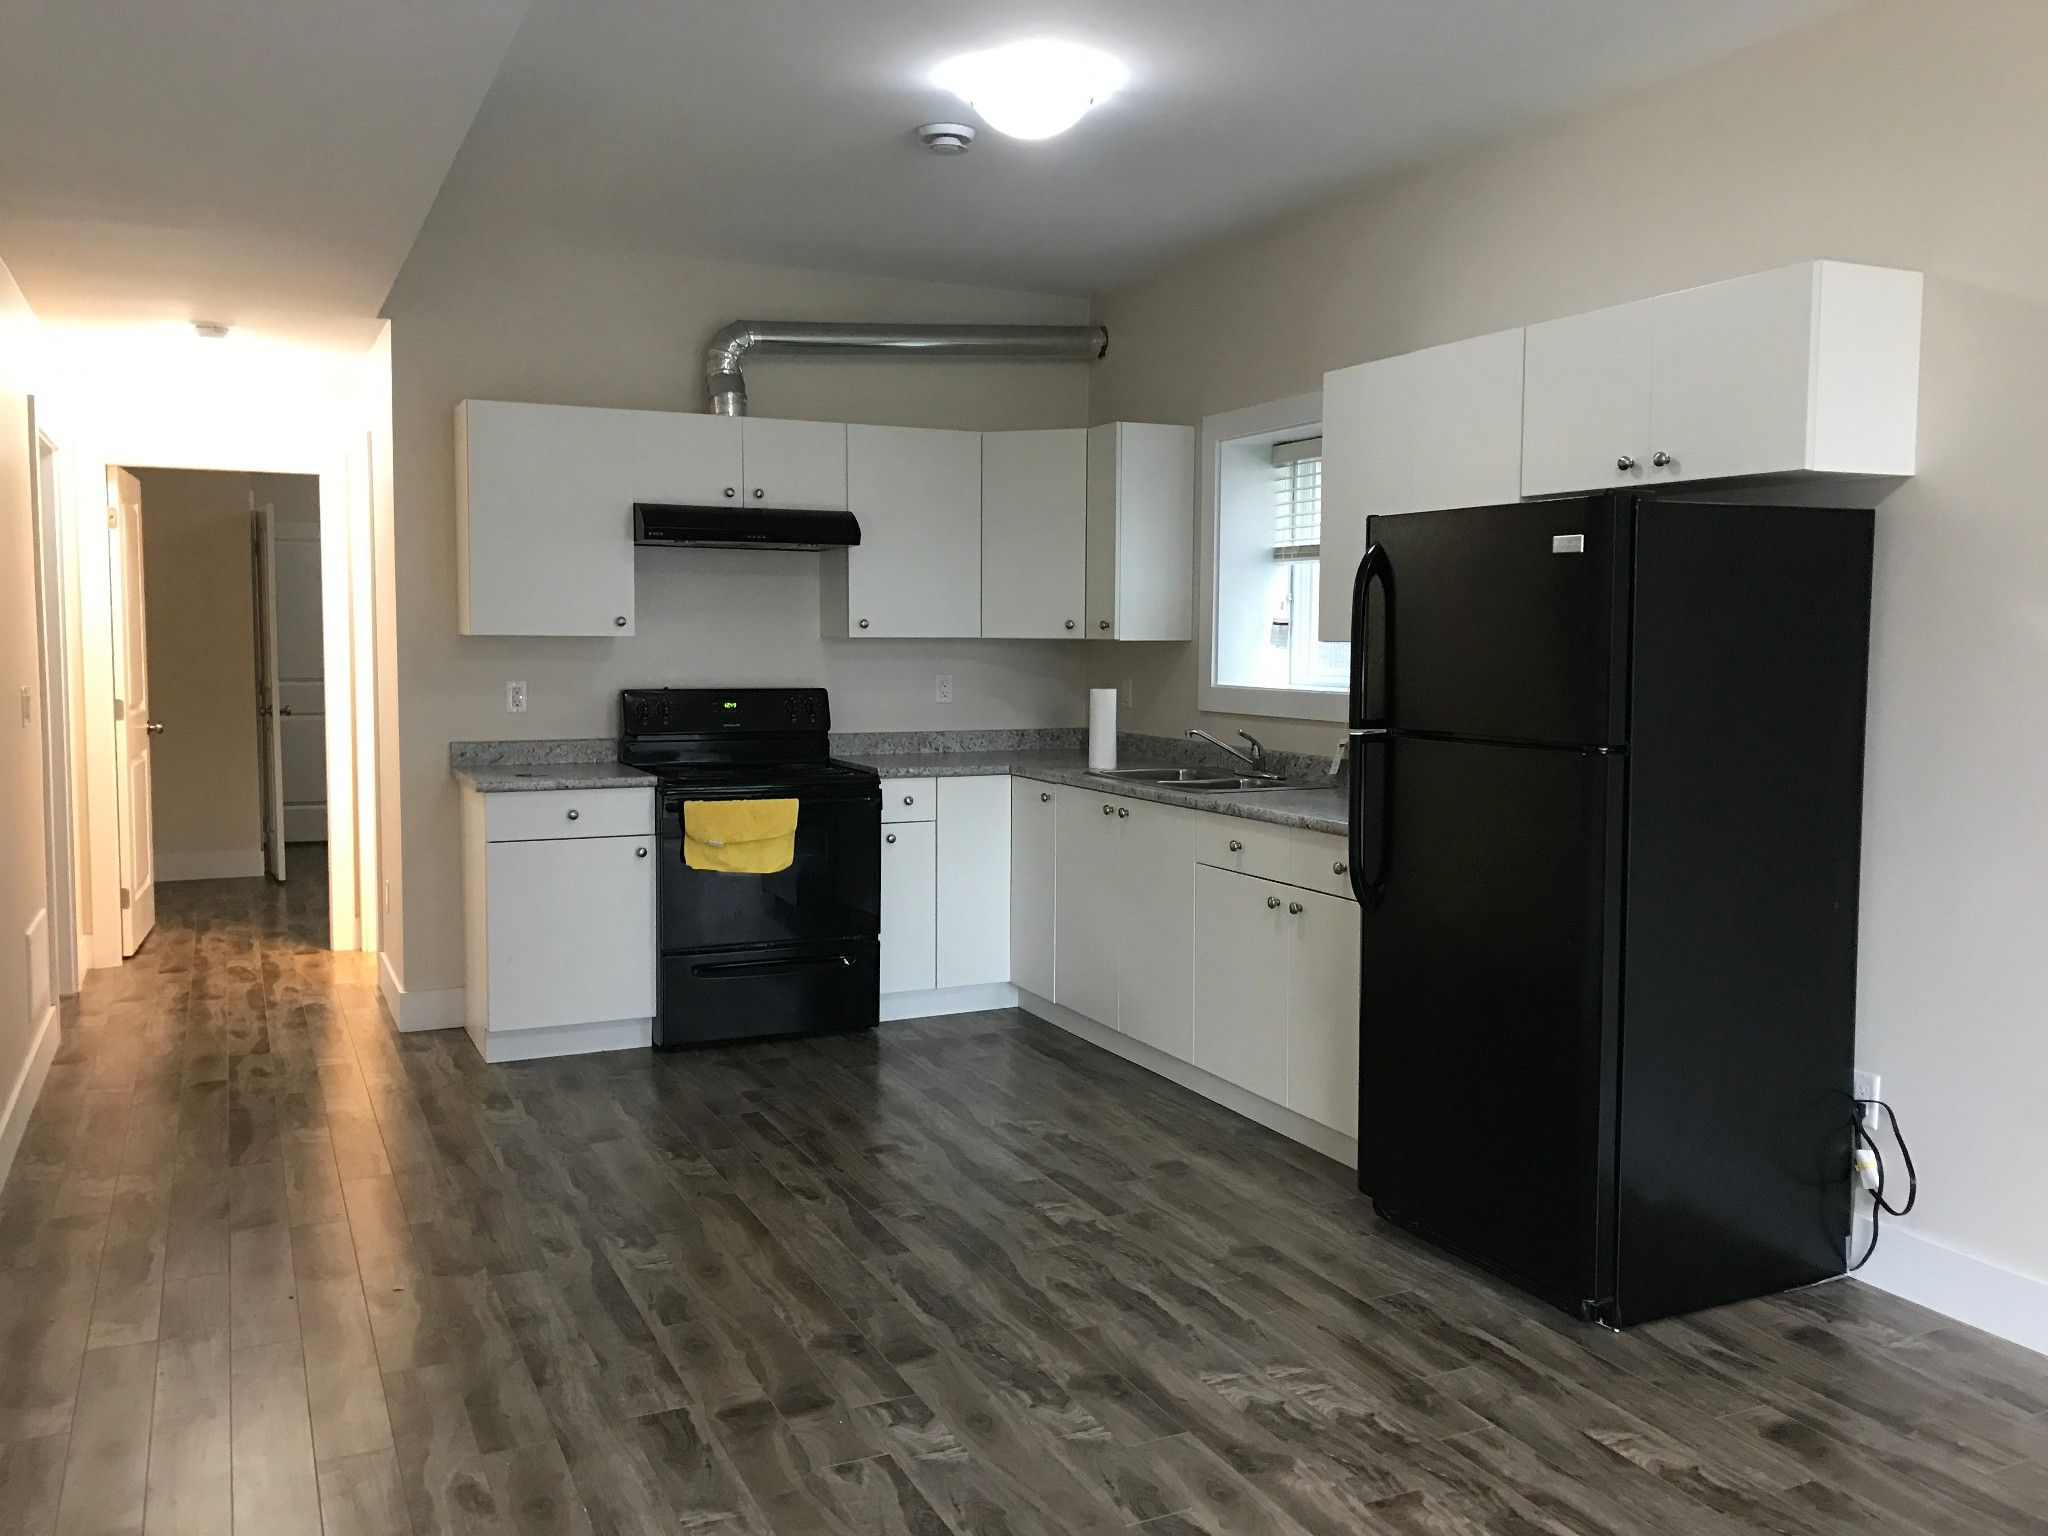 Main Photo: BSMT #6 3363 Horn St. in Abbotsford: Central Abbotsford Condo for rent